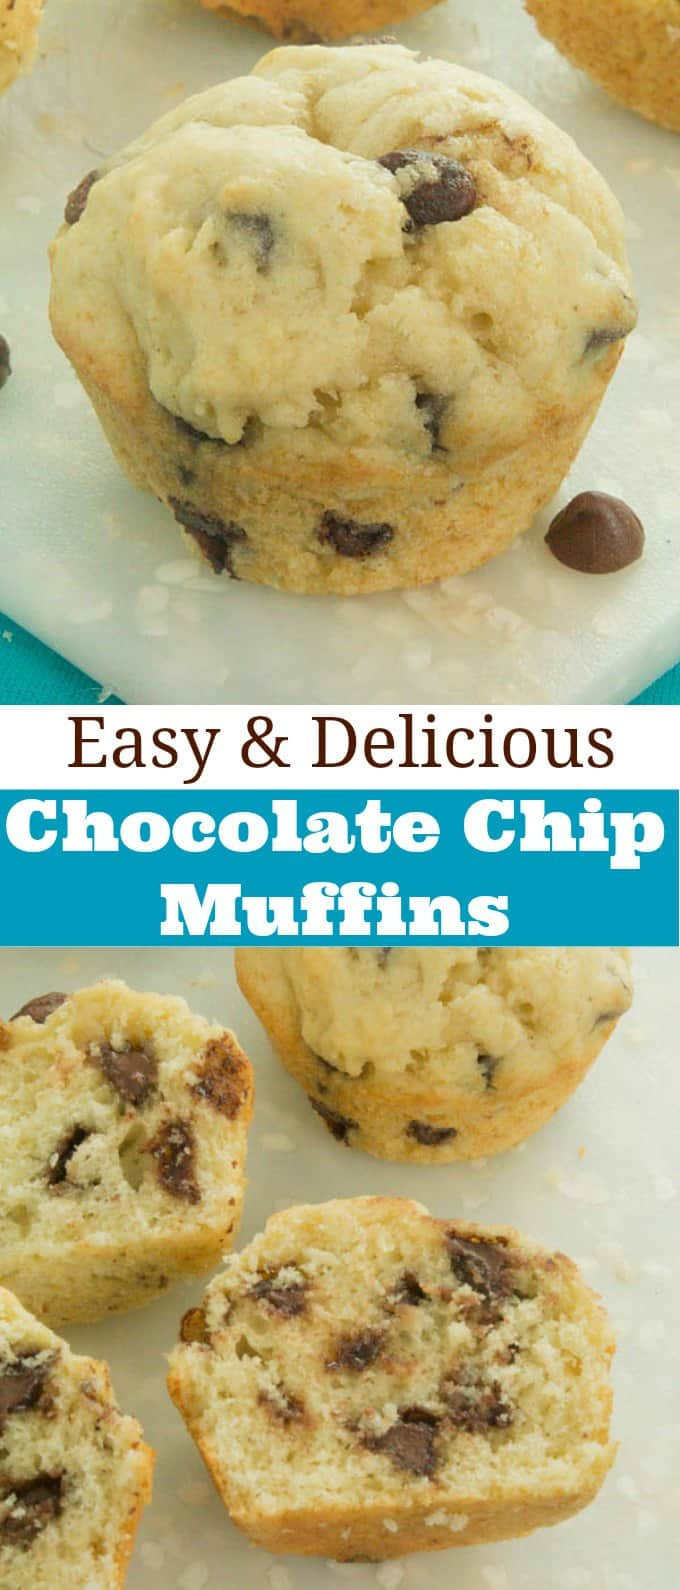 Easy Chocolate Chip Muffins - Gal on a Mission